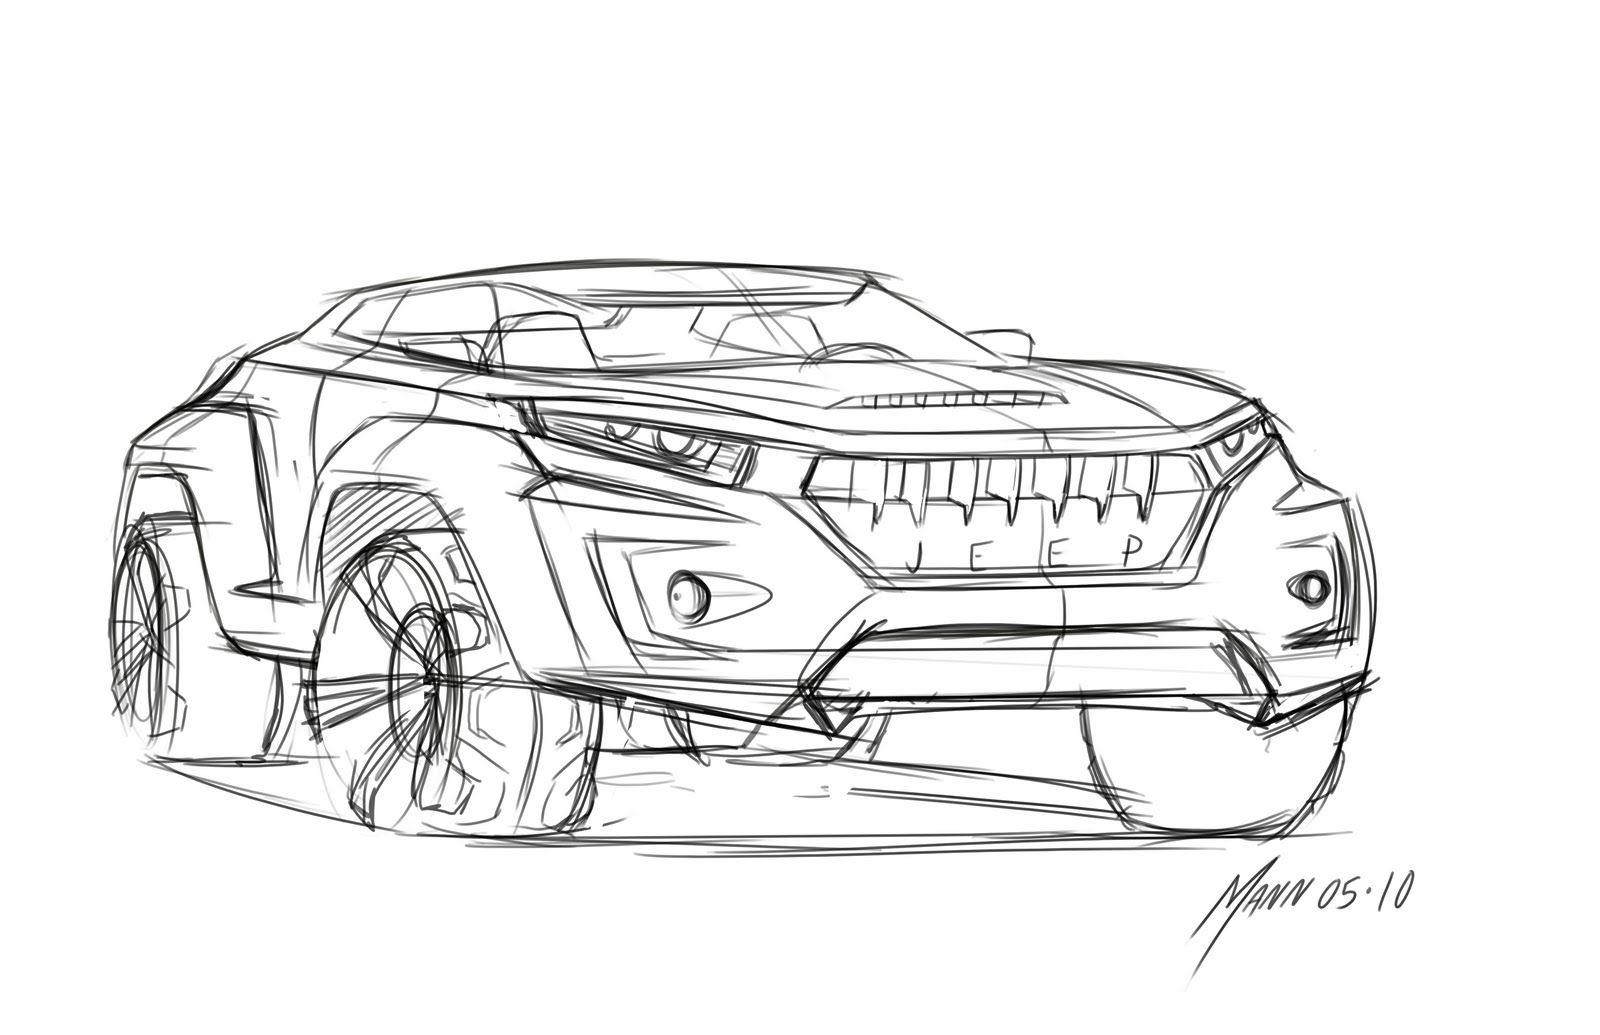 jeep concept vehicle drawing from we draw cars  may 2010